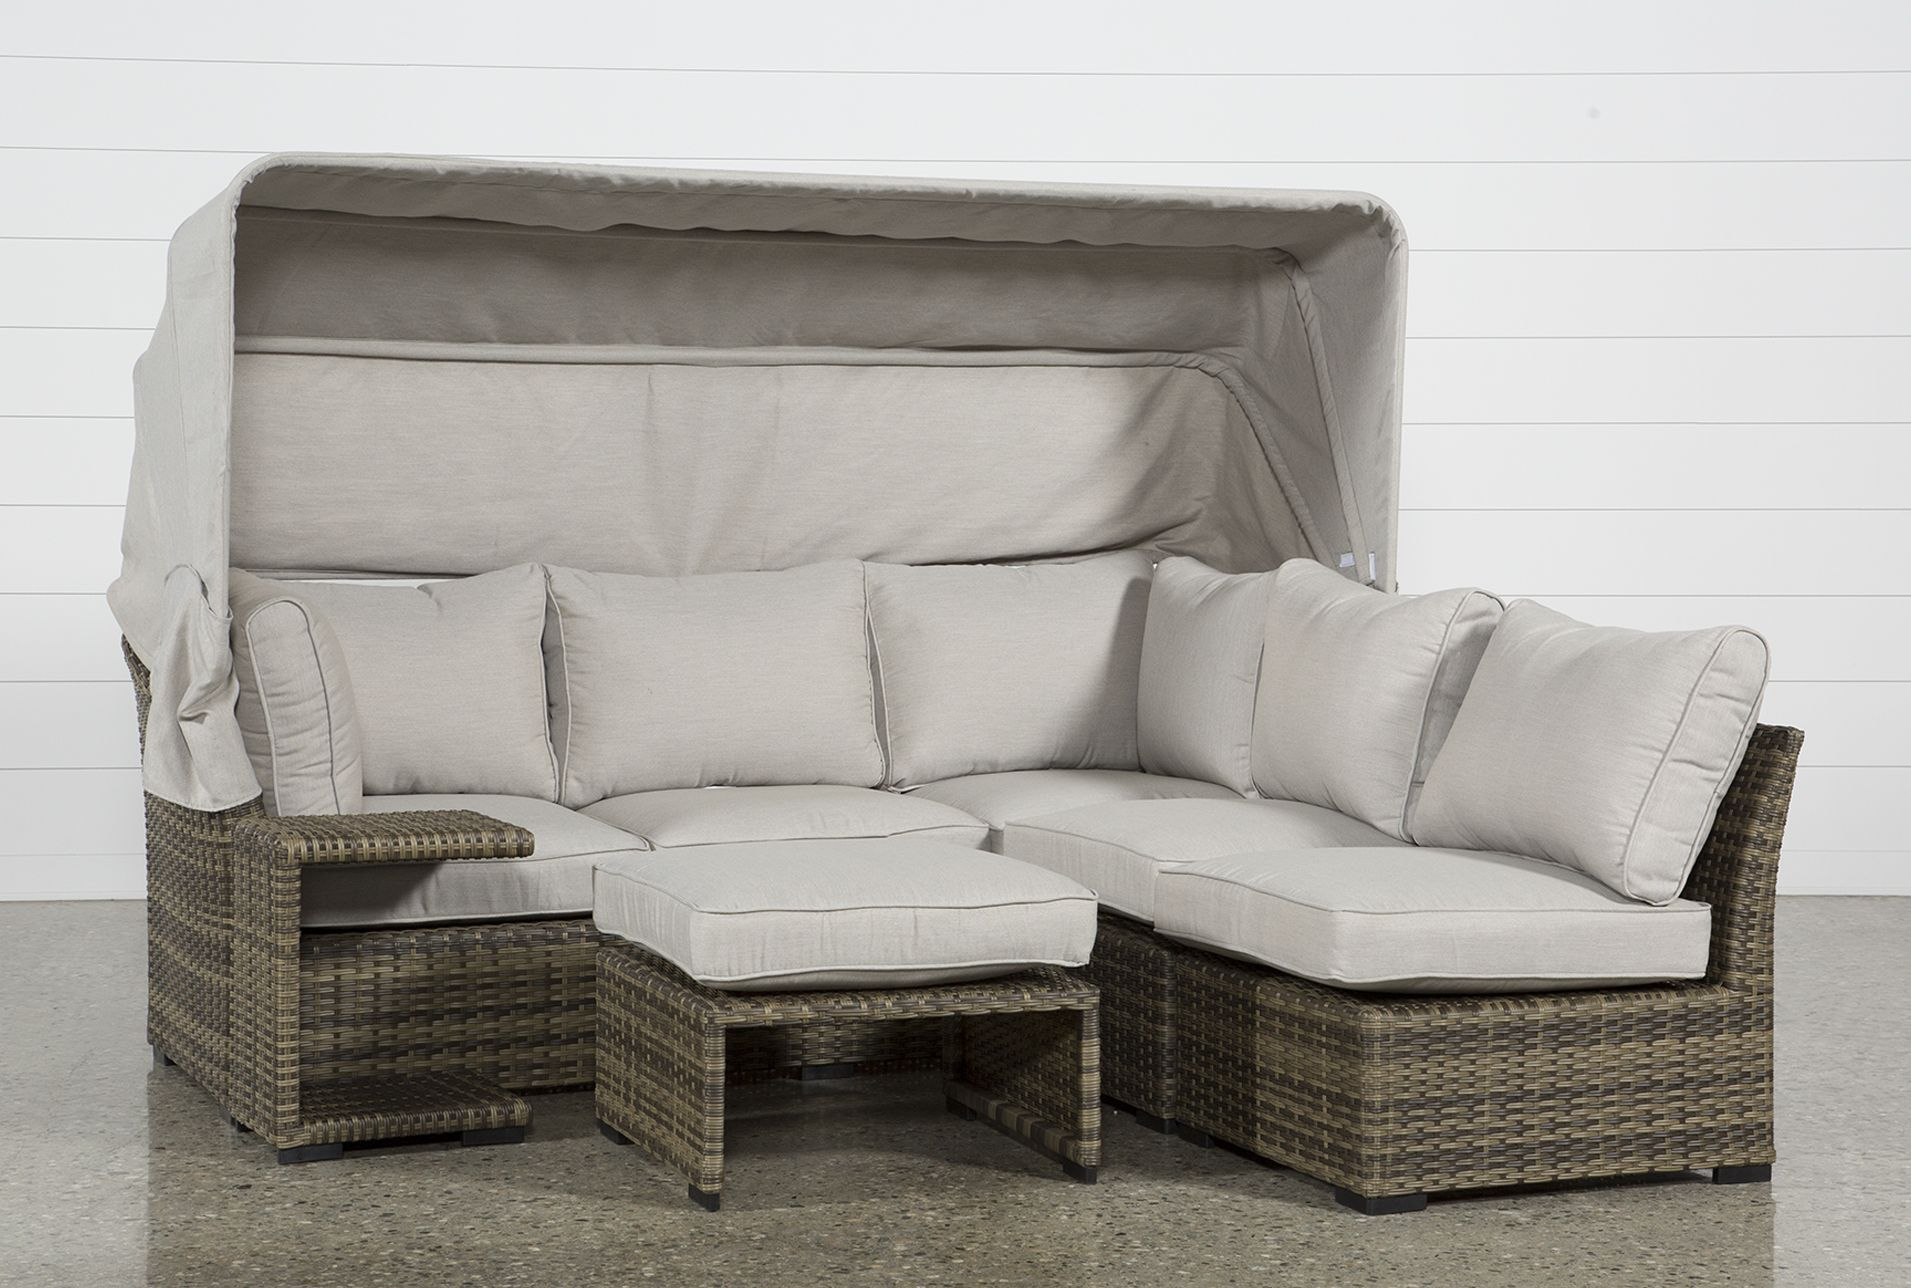 Outdoor Aventura II Daybed | Outdoor, Outdoor furniture ... on Living Spaces Outdoor Daybed id=75025